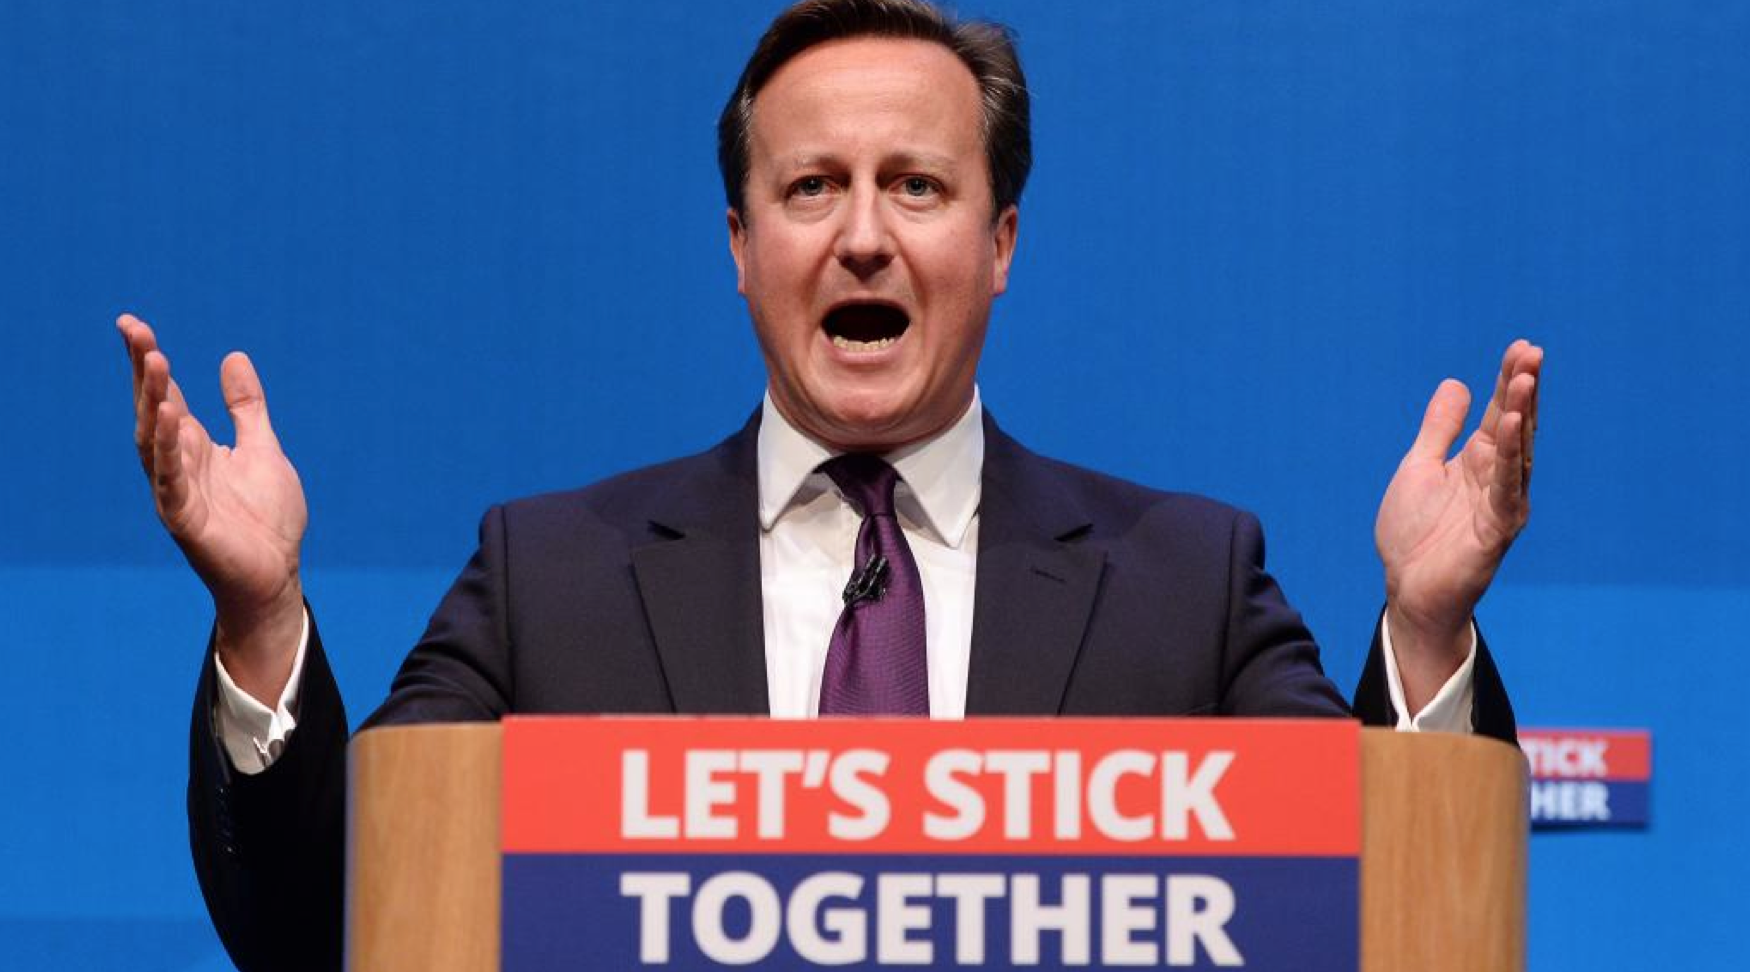 David Cameron Pleads With Scots to Vote No to Independence